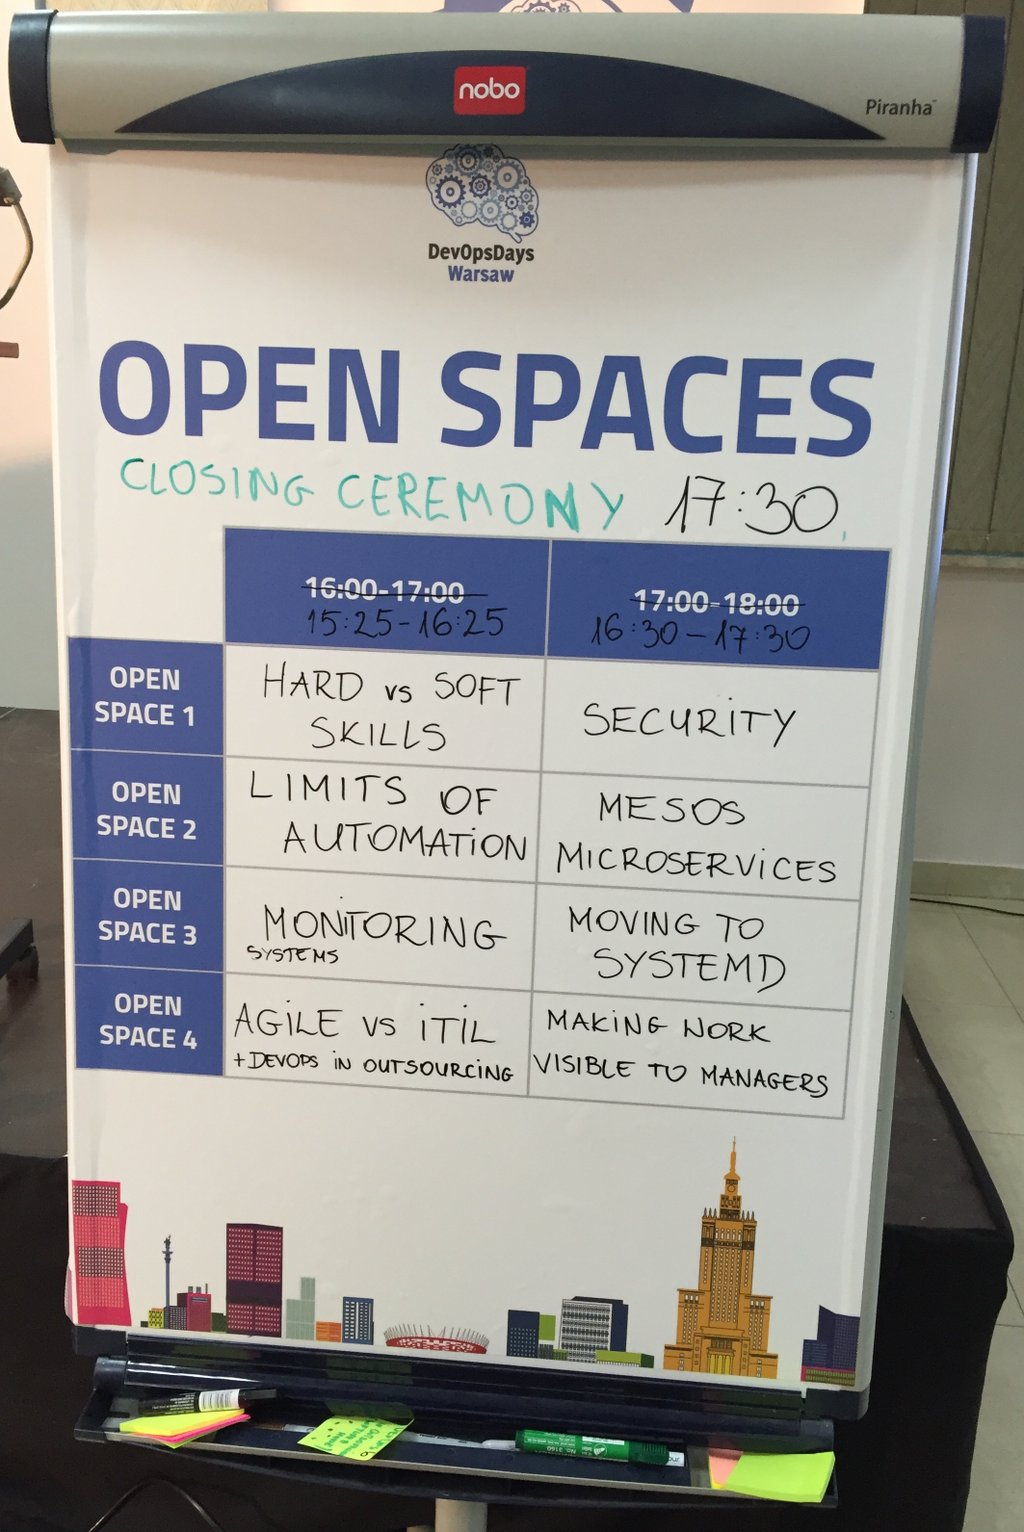 Devopsdays Openspaces